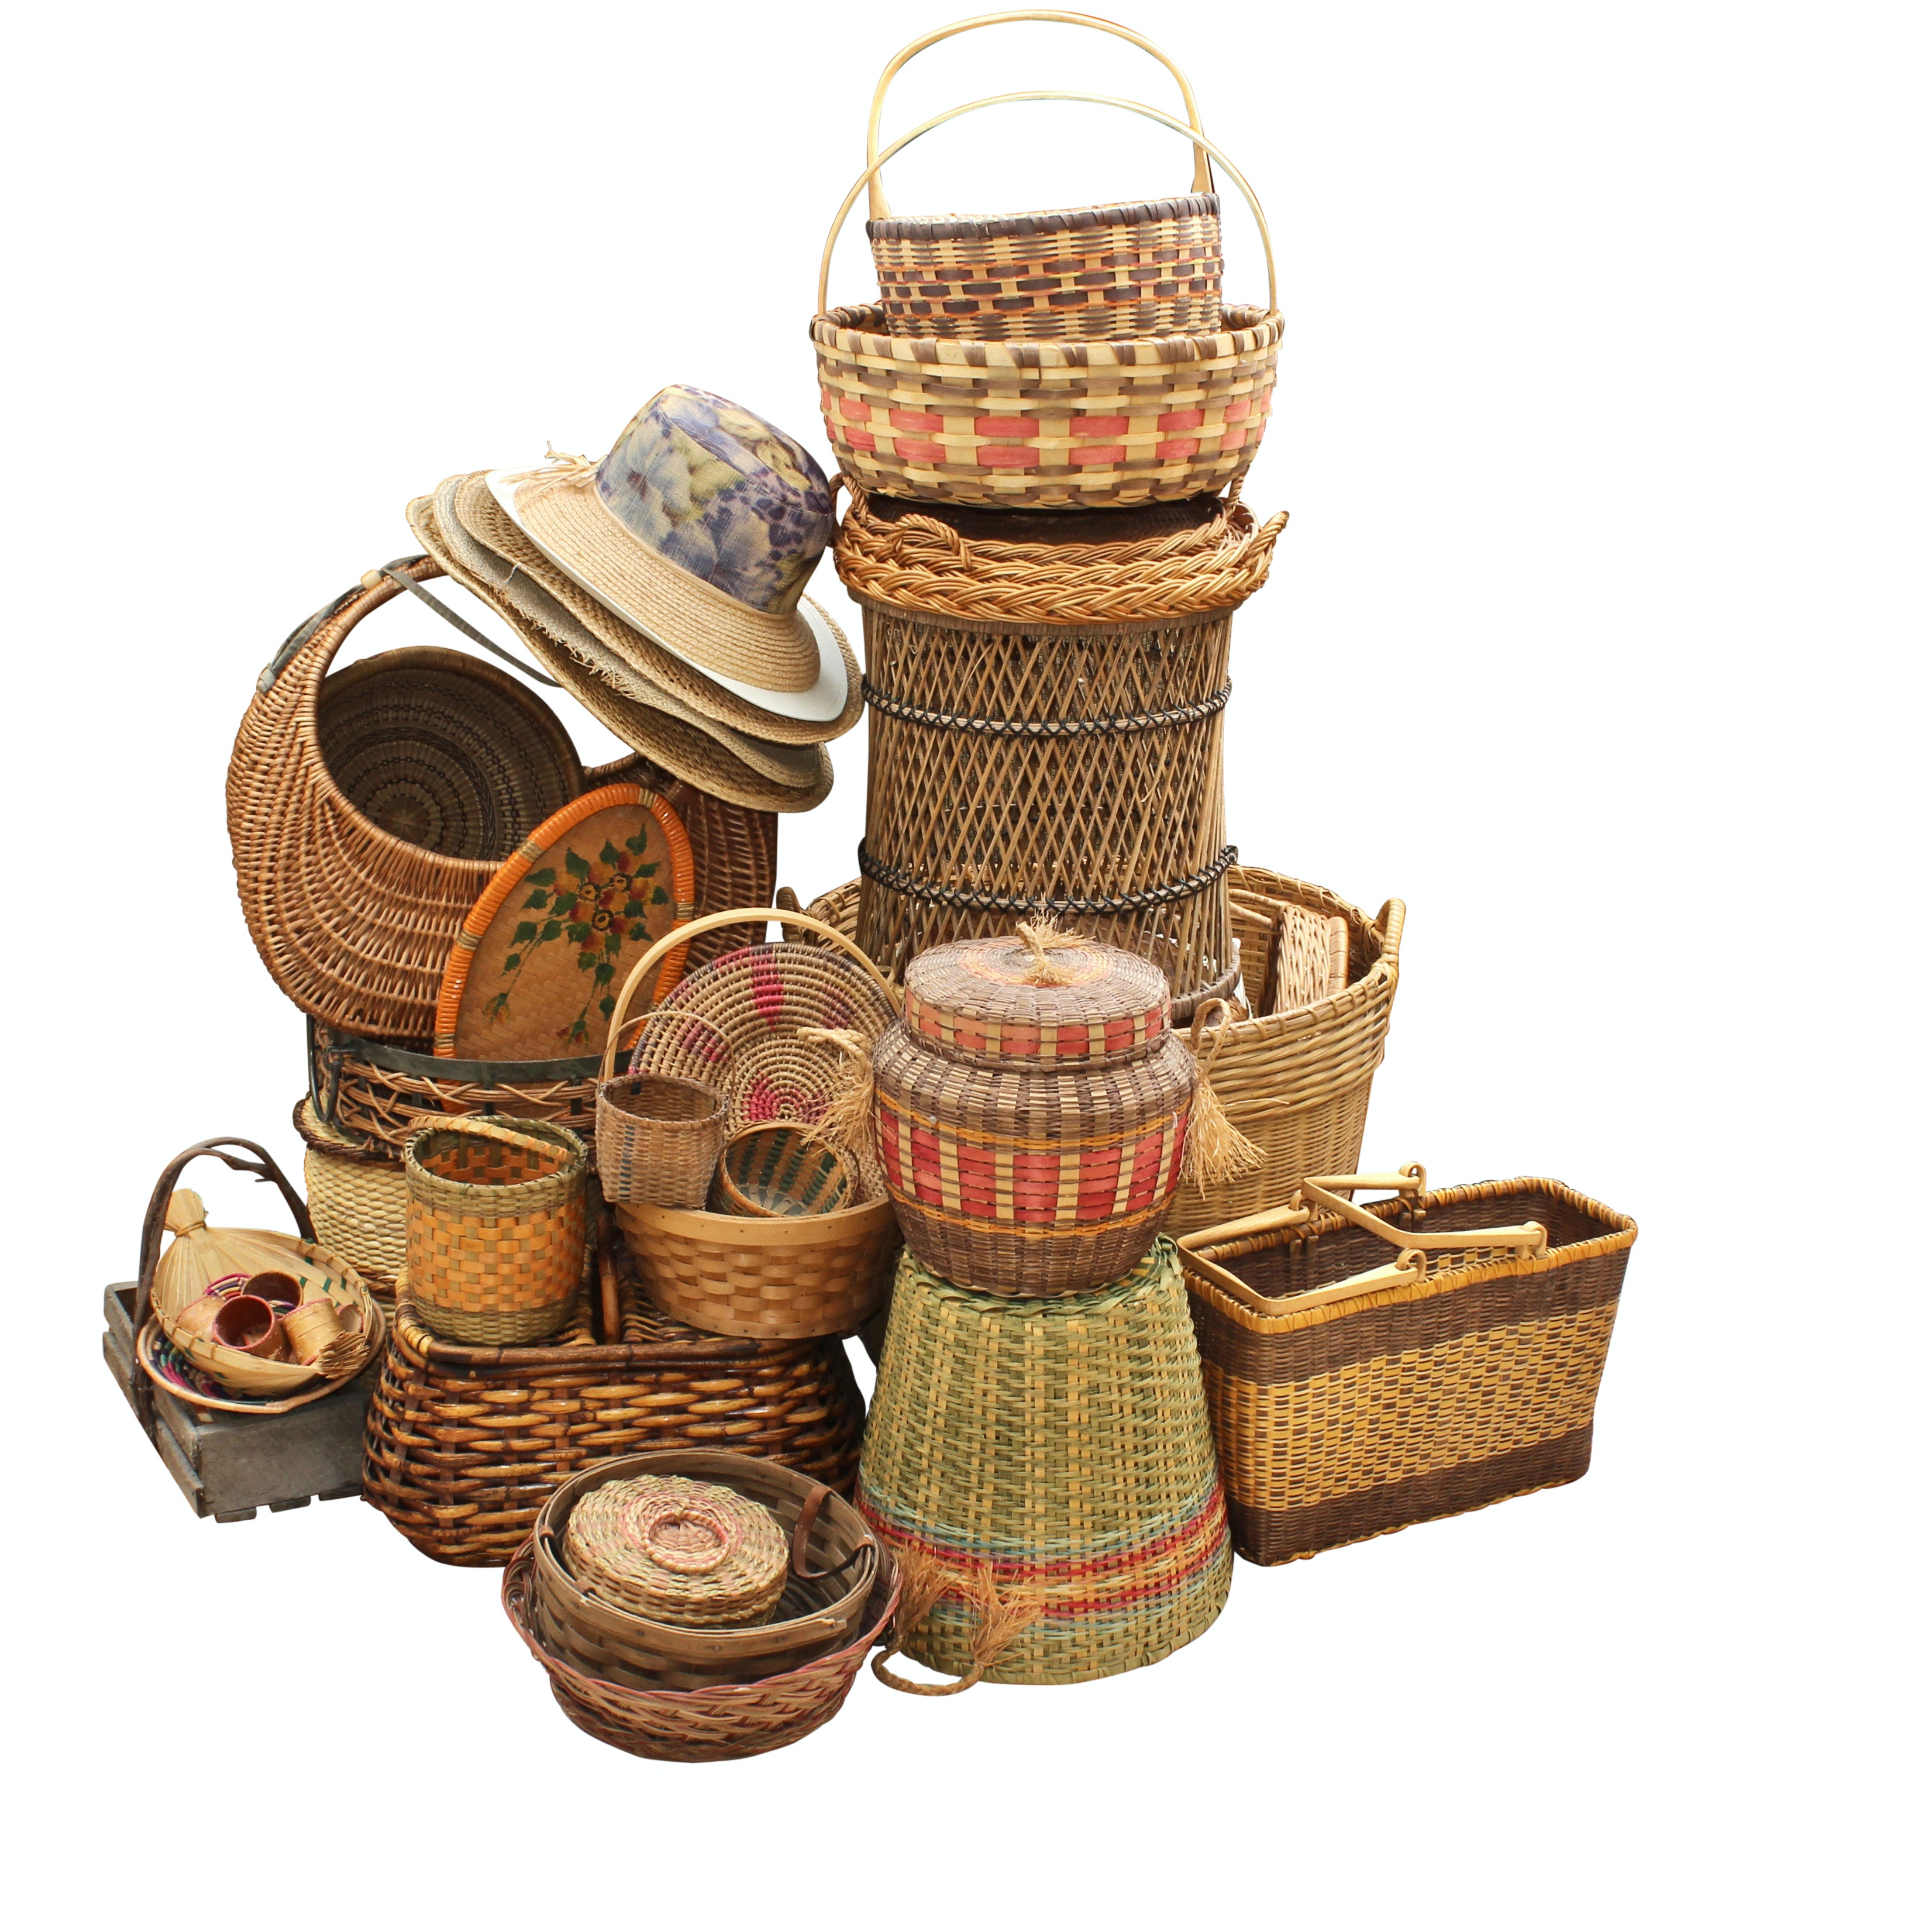 Collection of Hand Woven Decor Including Baskets and Straw Hats